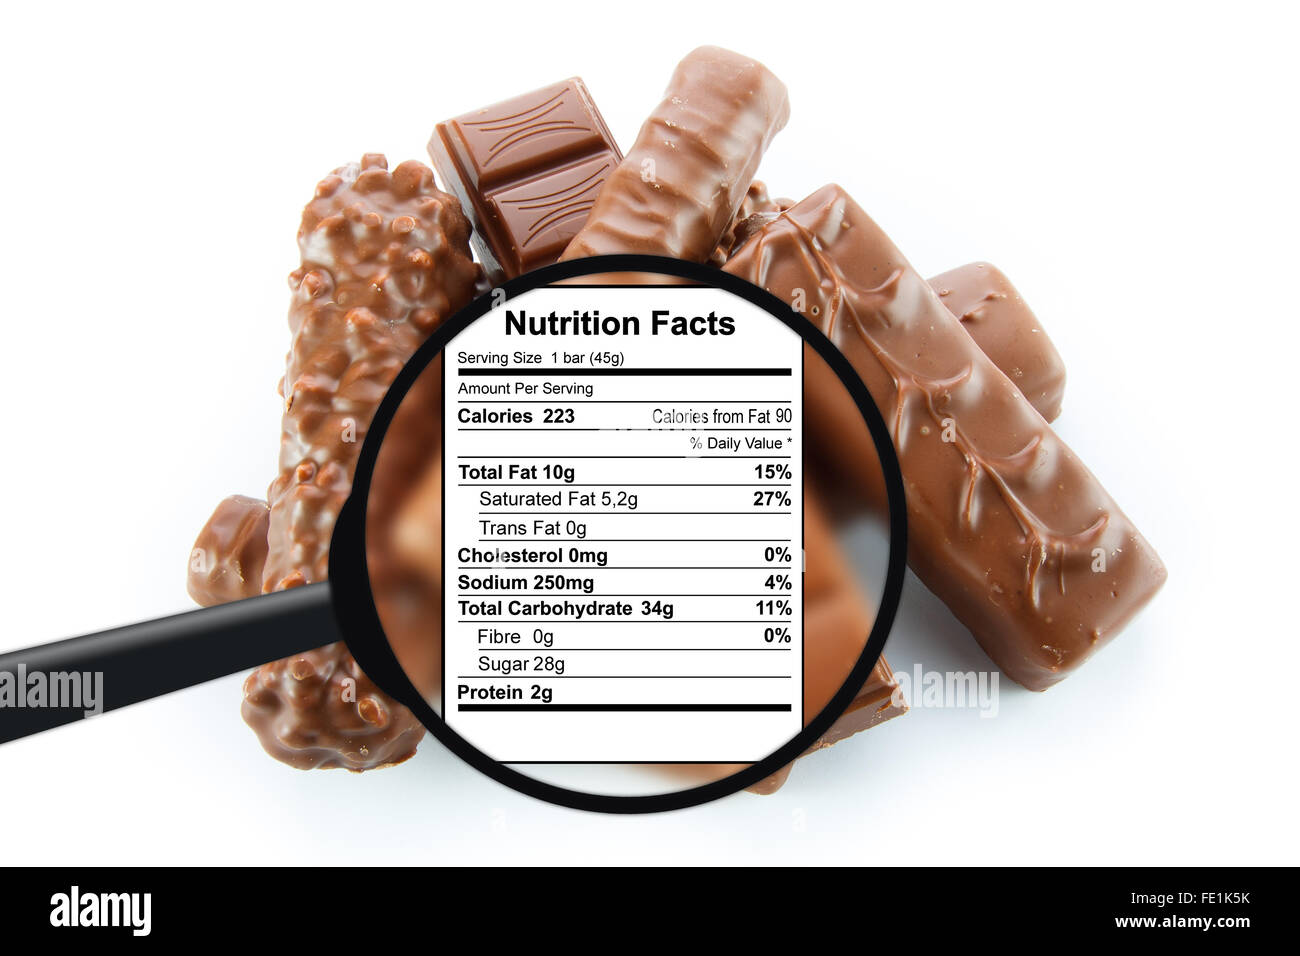 Chocolate bars - nutrition facts - Stock Image